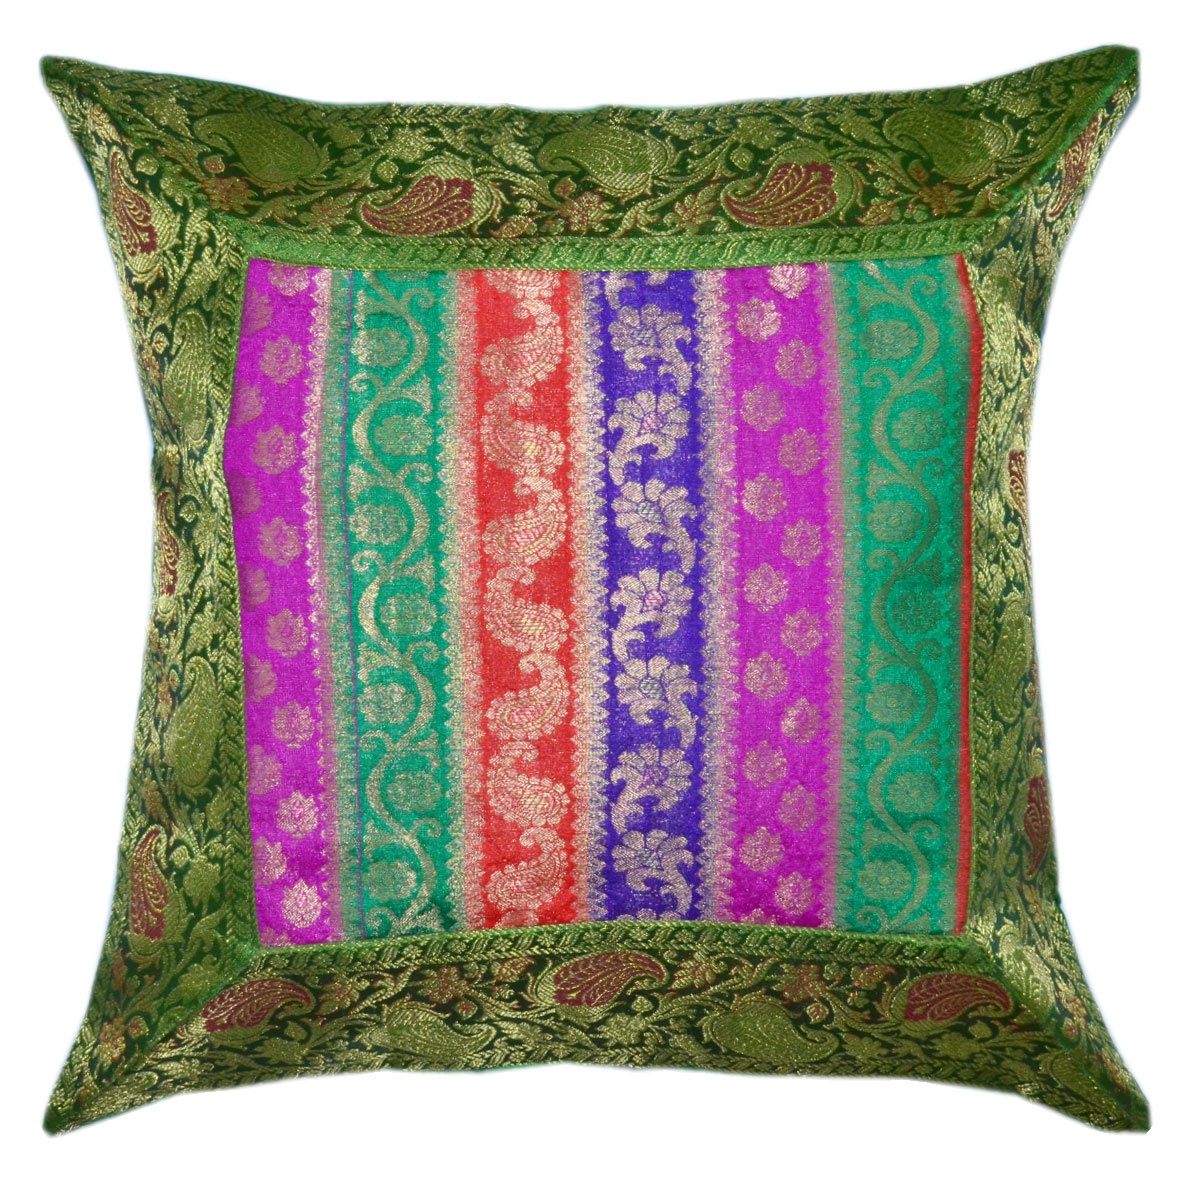 Bohemian Style Throw Pillows : Multi Floral Striped Bohemian Style Silk Throw Pillow Cover - RoyalFurnish.com